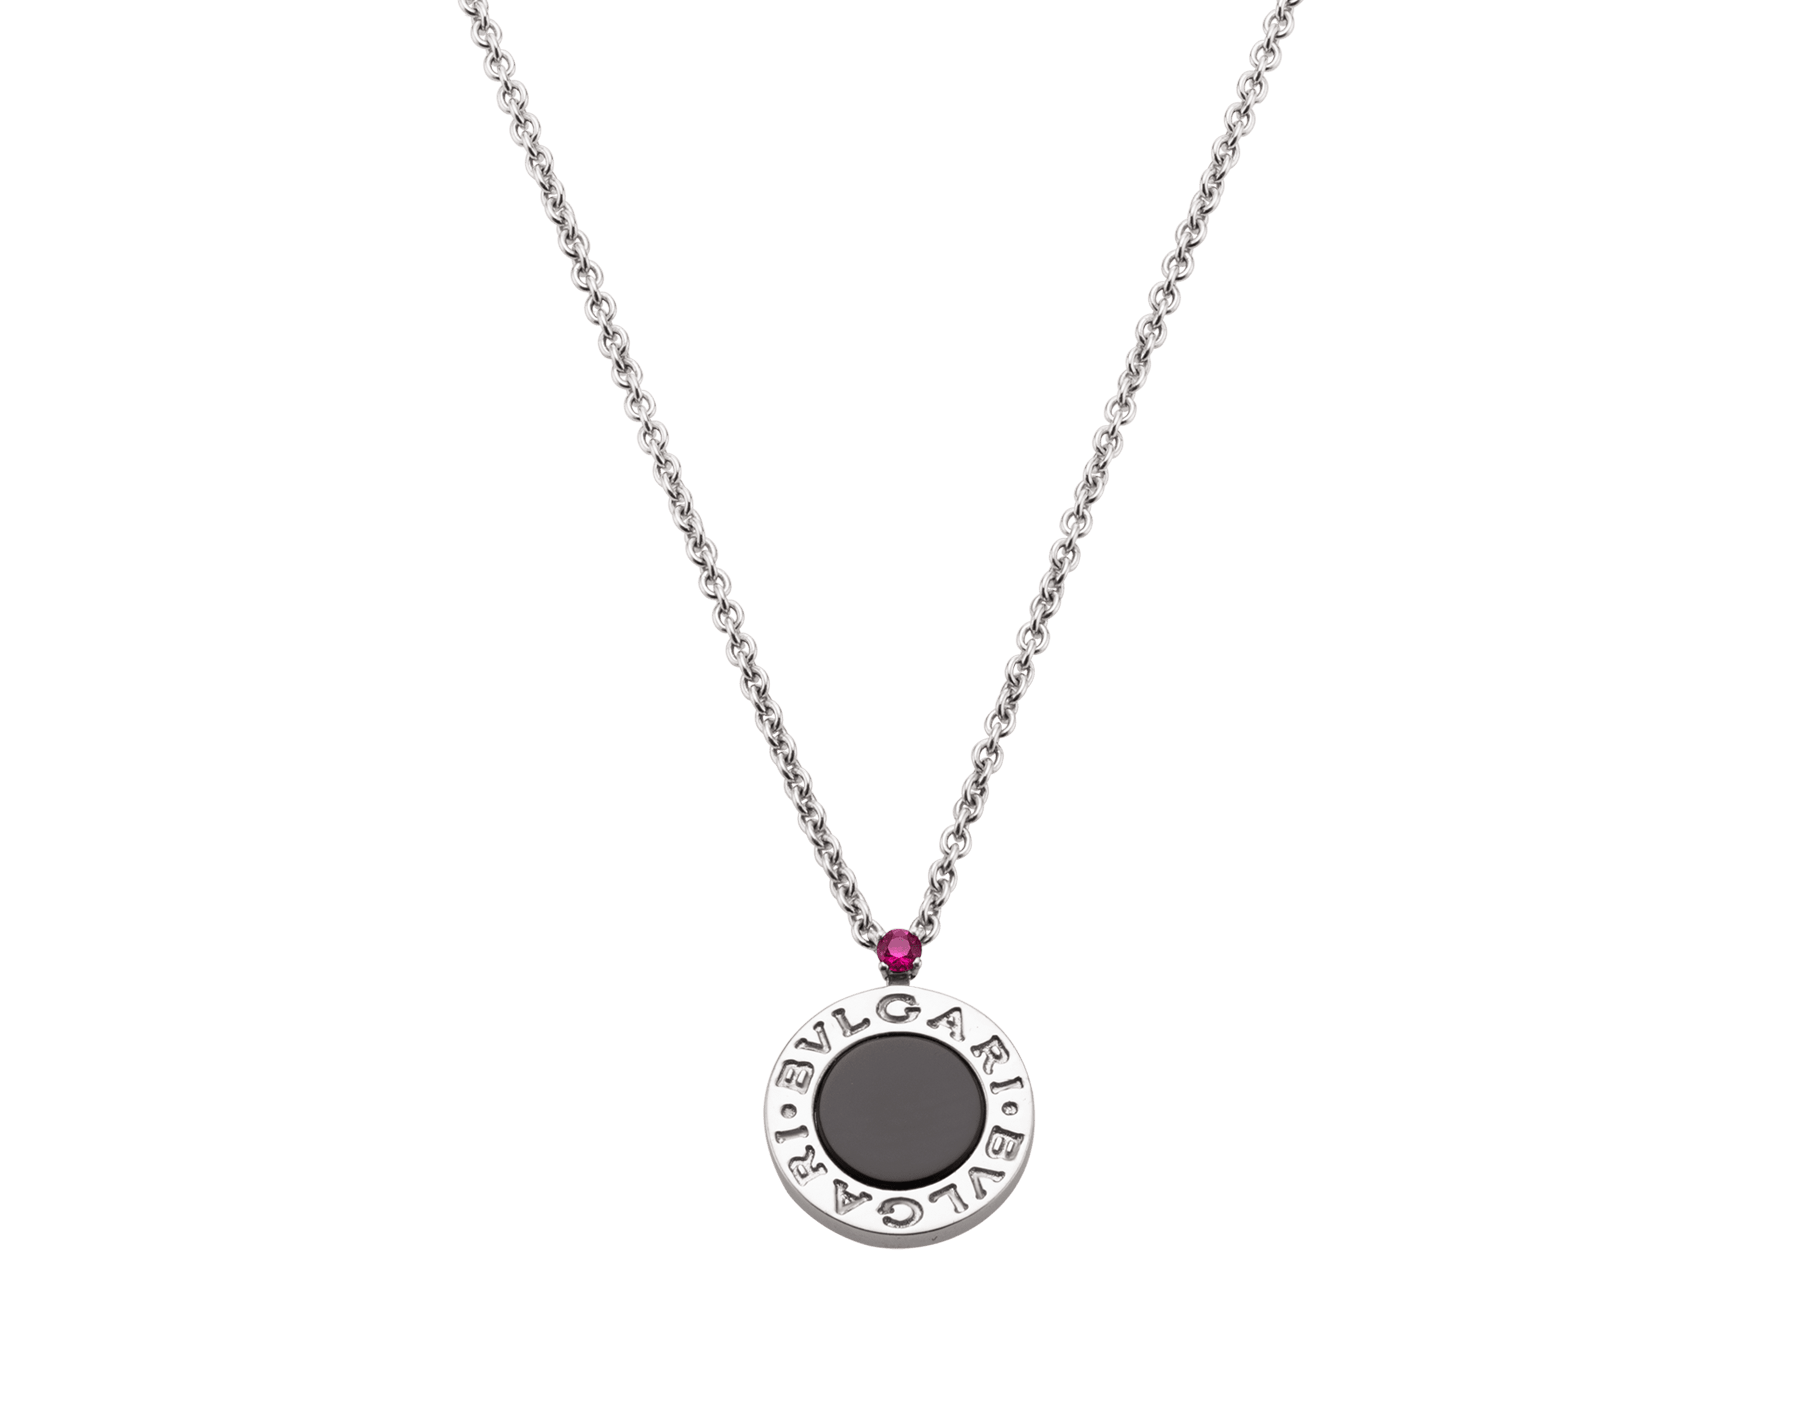 Save the Children 10th anniversary necklace in sterling silver with pendant set with onyx element and a ruby 356910 image 4